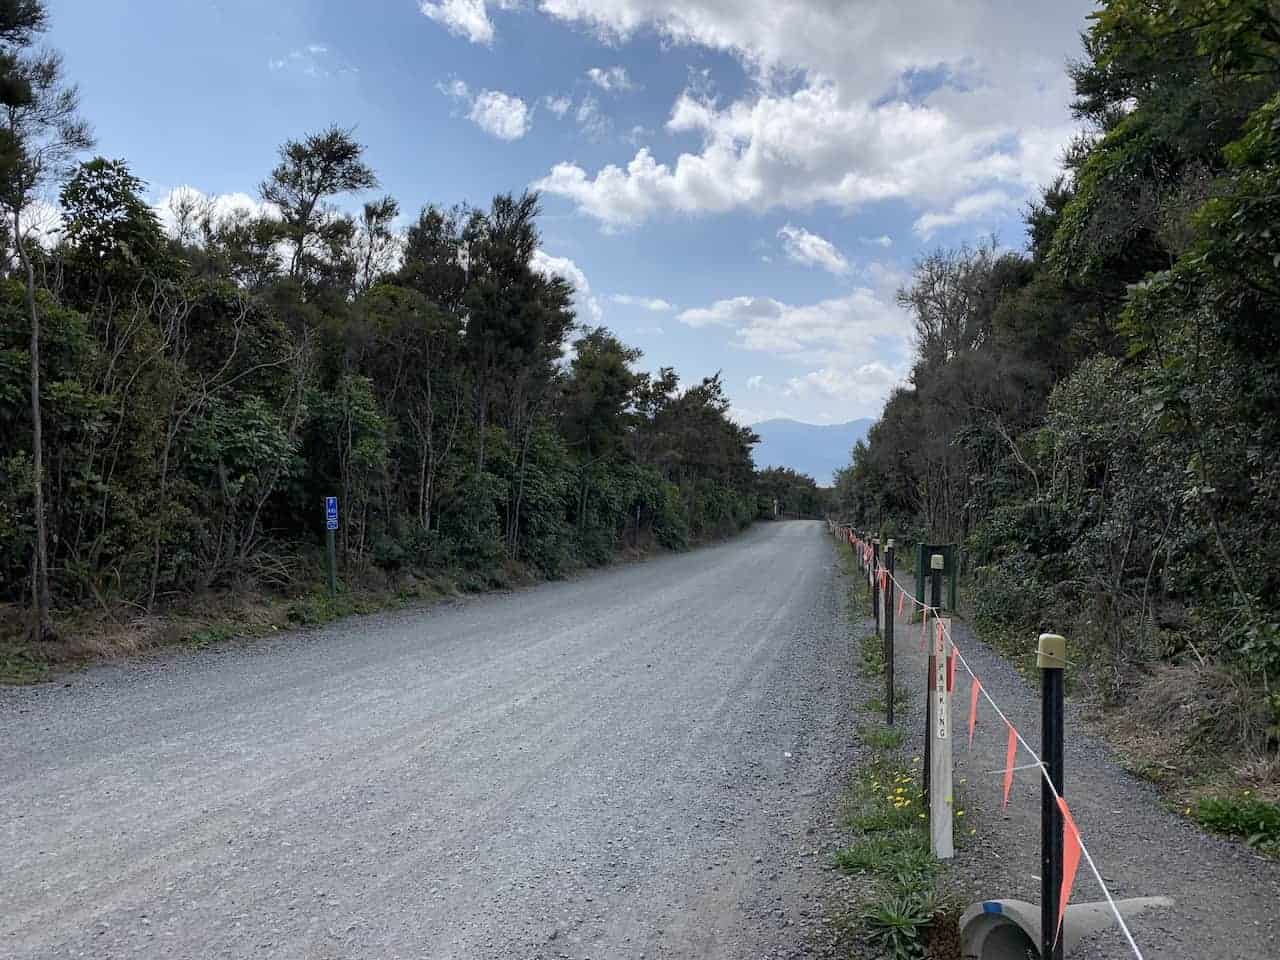 Ketetahi Road to Parking Lot